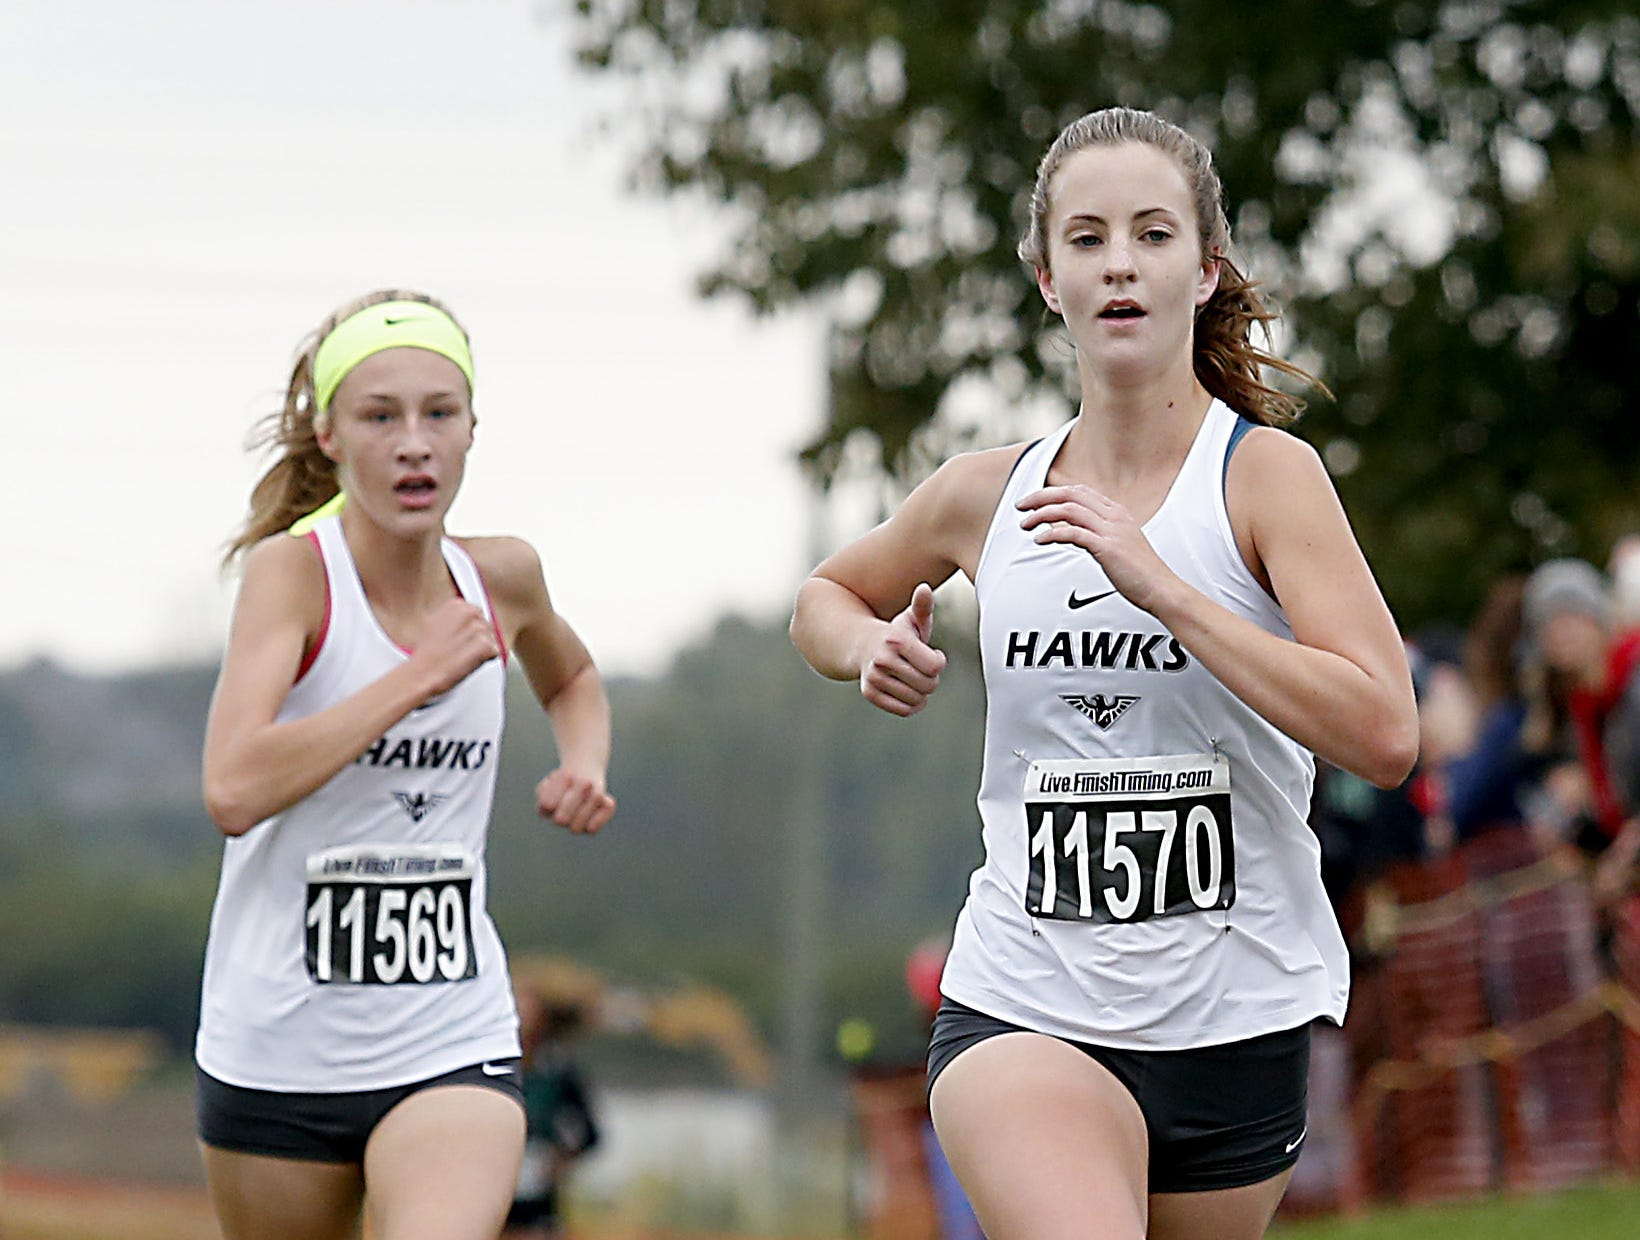 Lakota East's Danielle Horter and Kelsi Harris finish second and third during the Greater Miami Conference Girls and Boys Cross Country Championships at Voice of America Park in West Chester Saturday, Oct. 13, 2018.